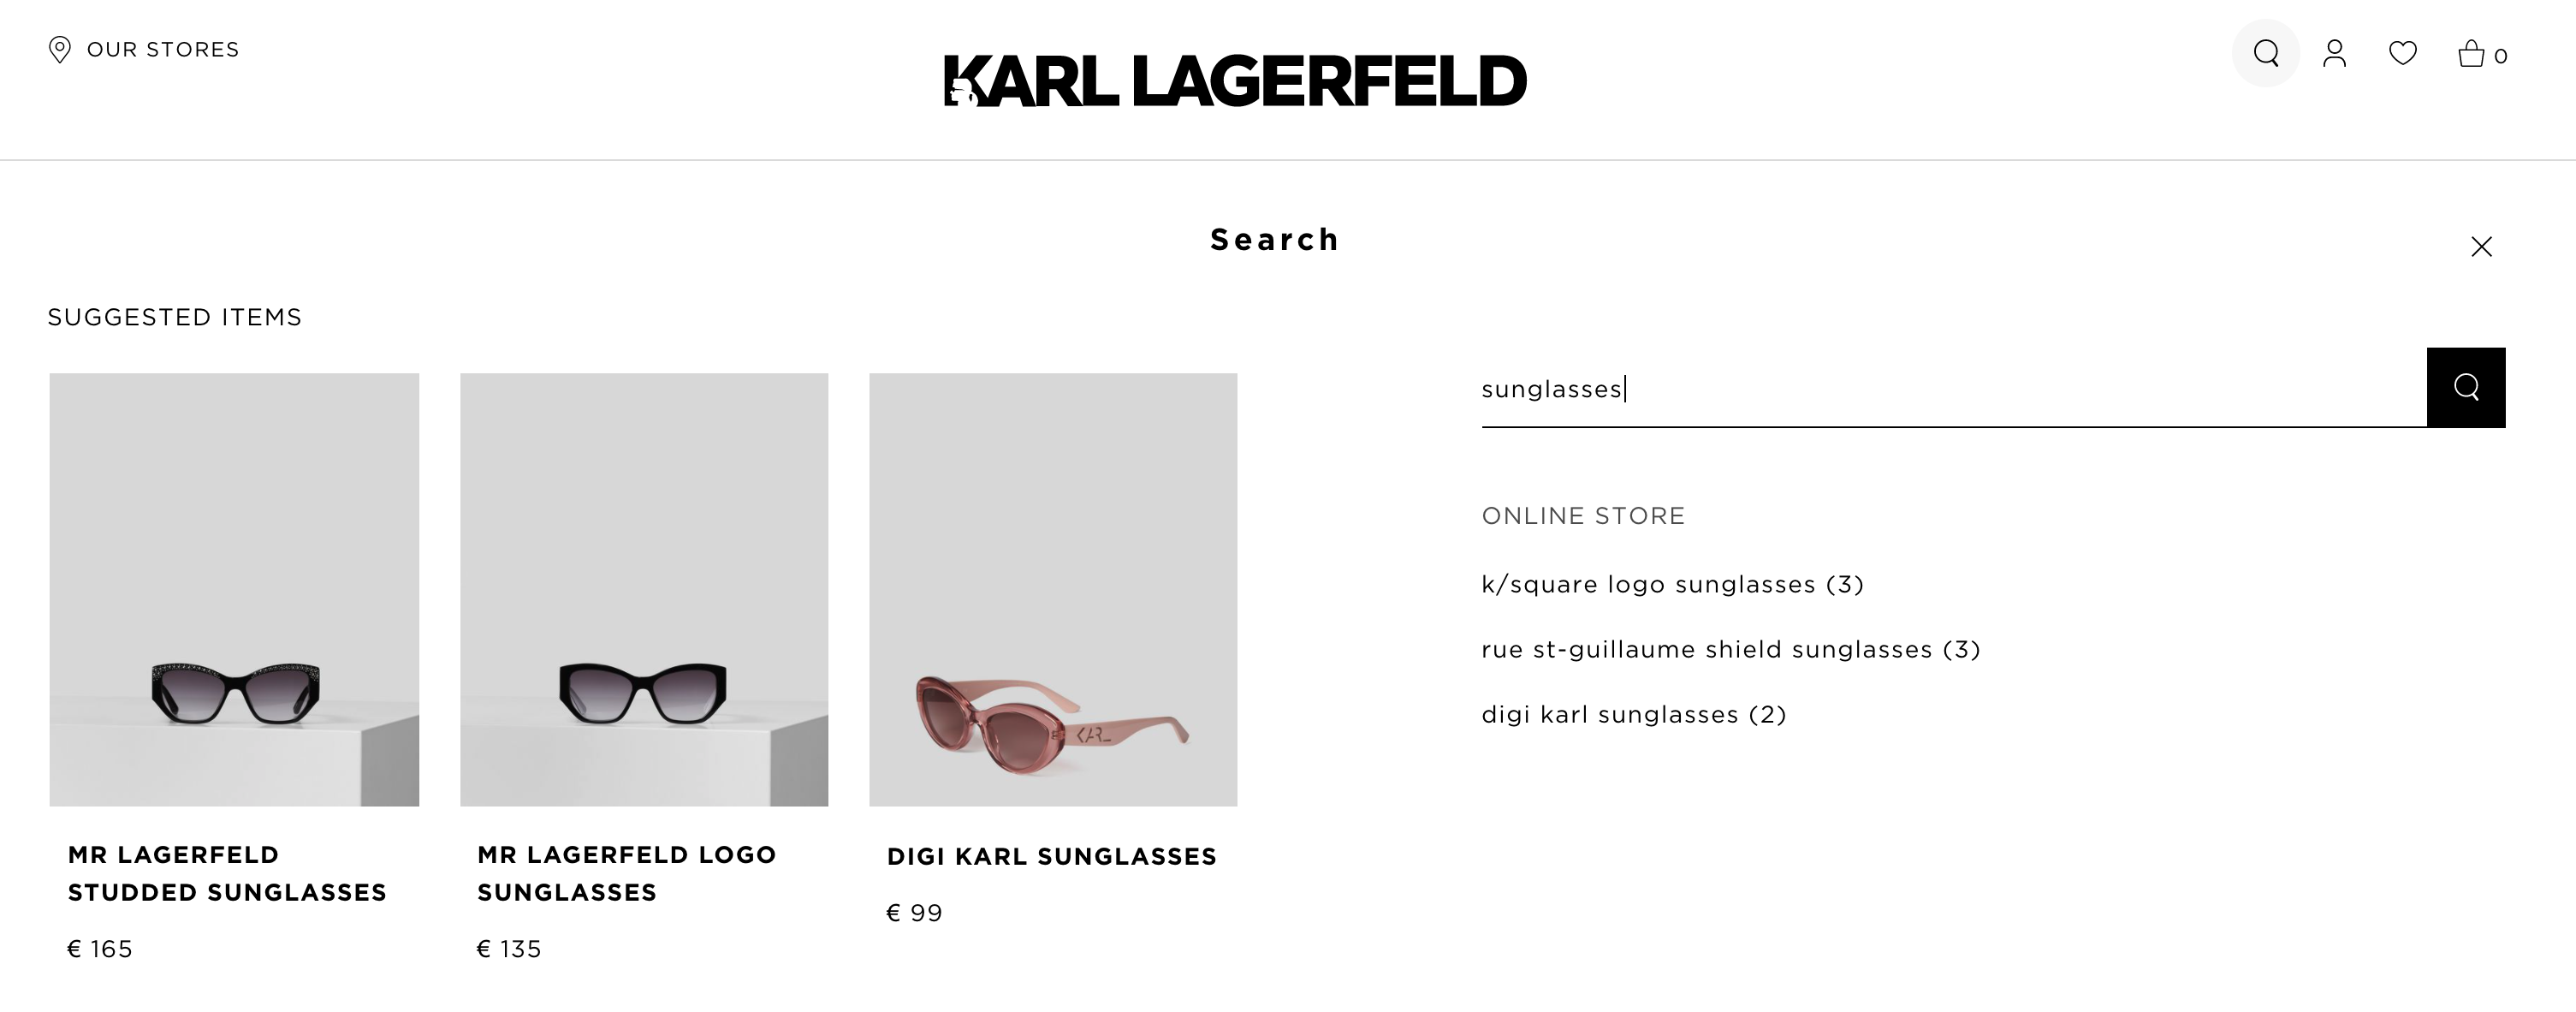 faceted onsite search karl lagerfeld